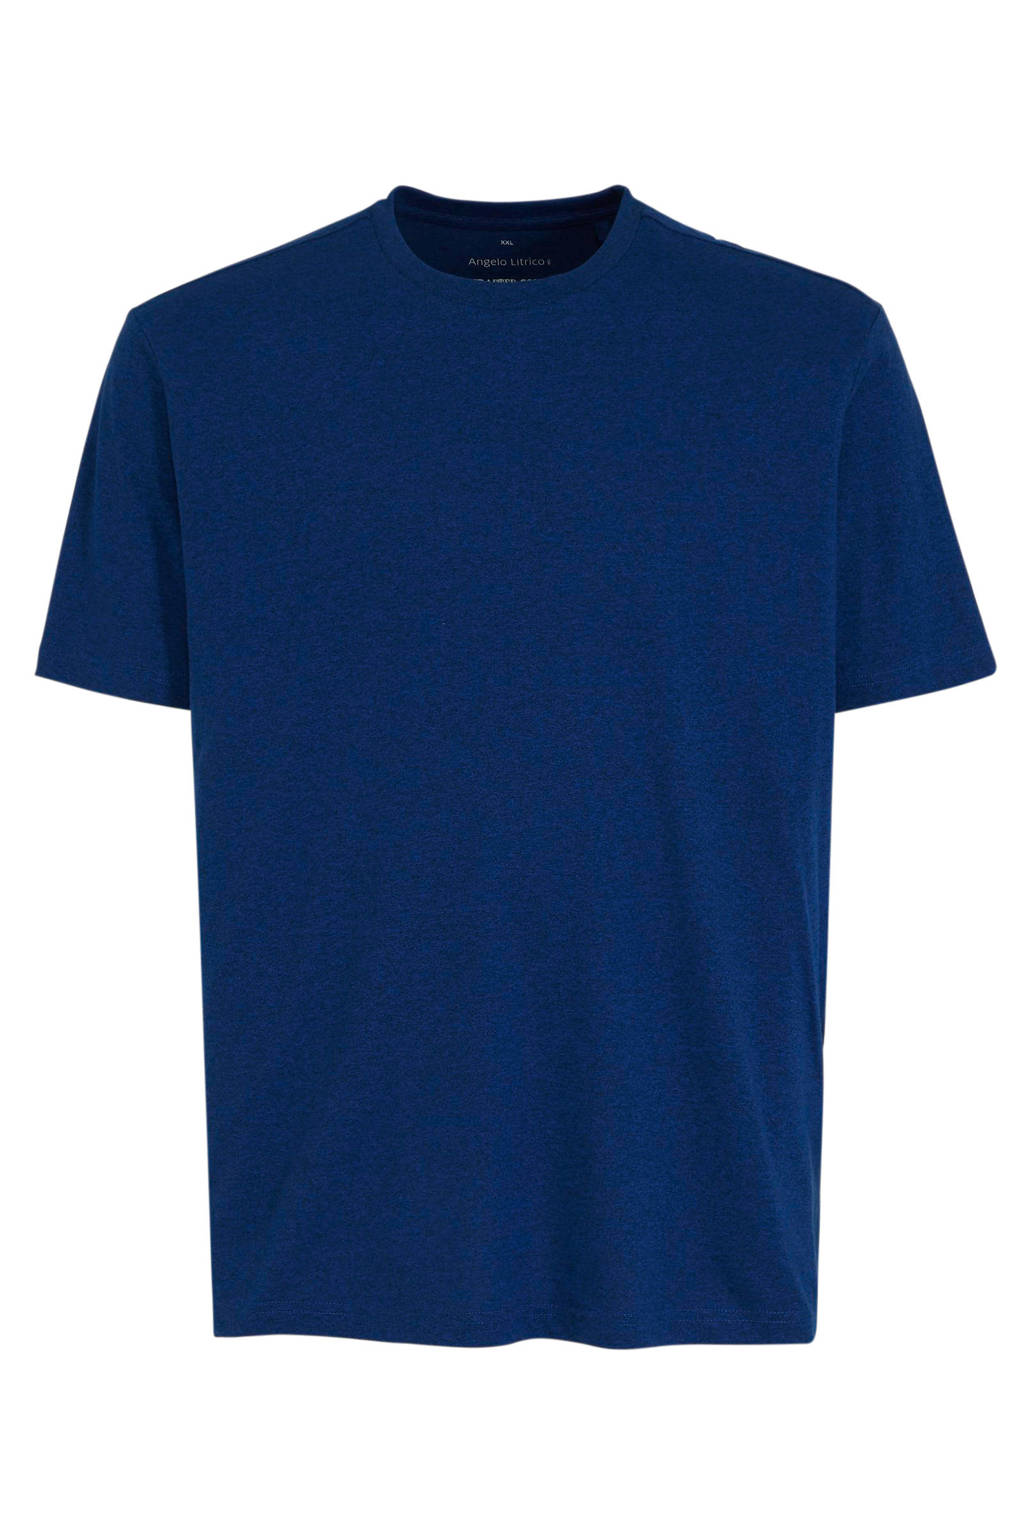 C&A XL Angelo Litrico T-shirt donkerblauw, Donkerblauw